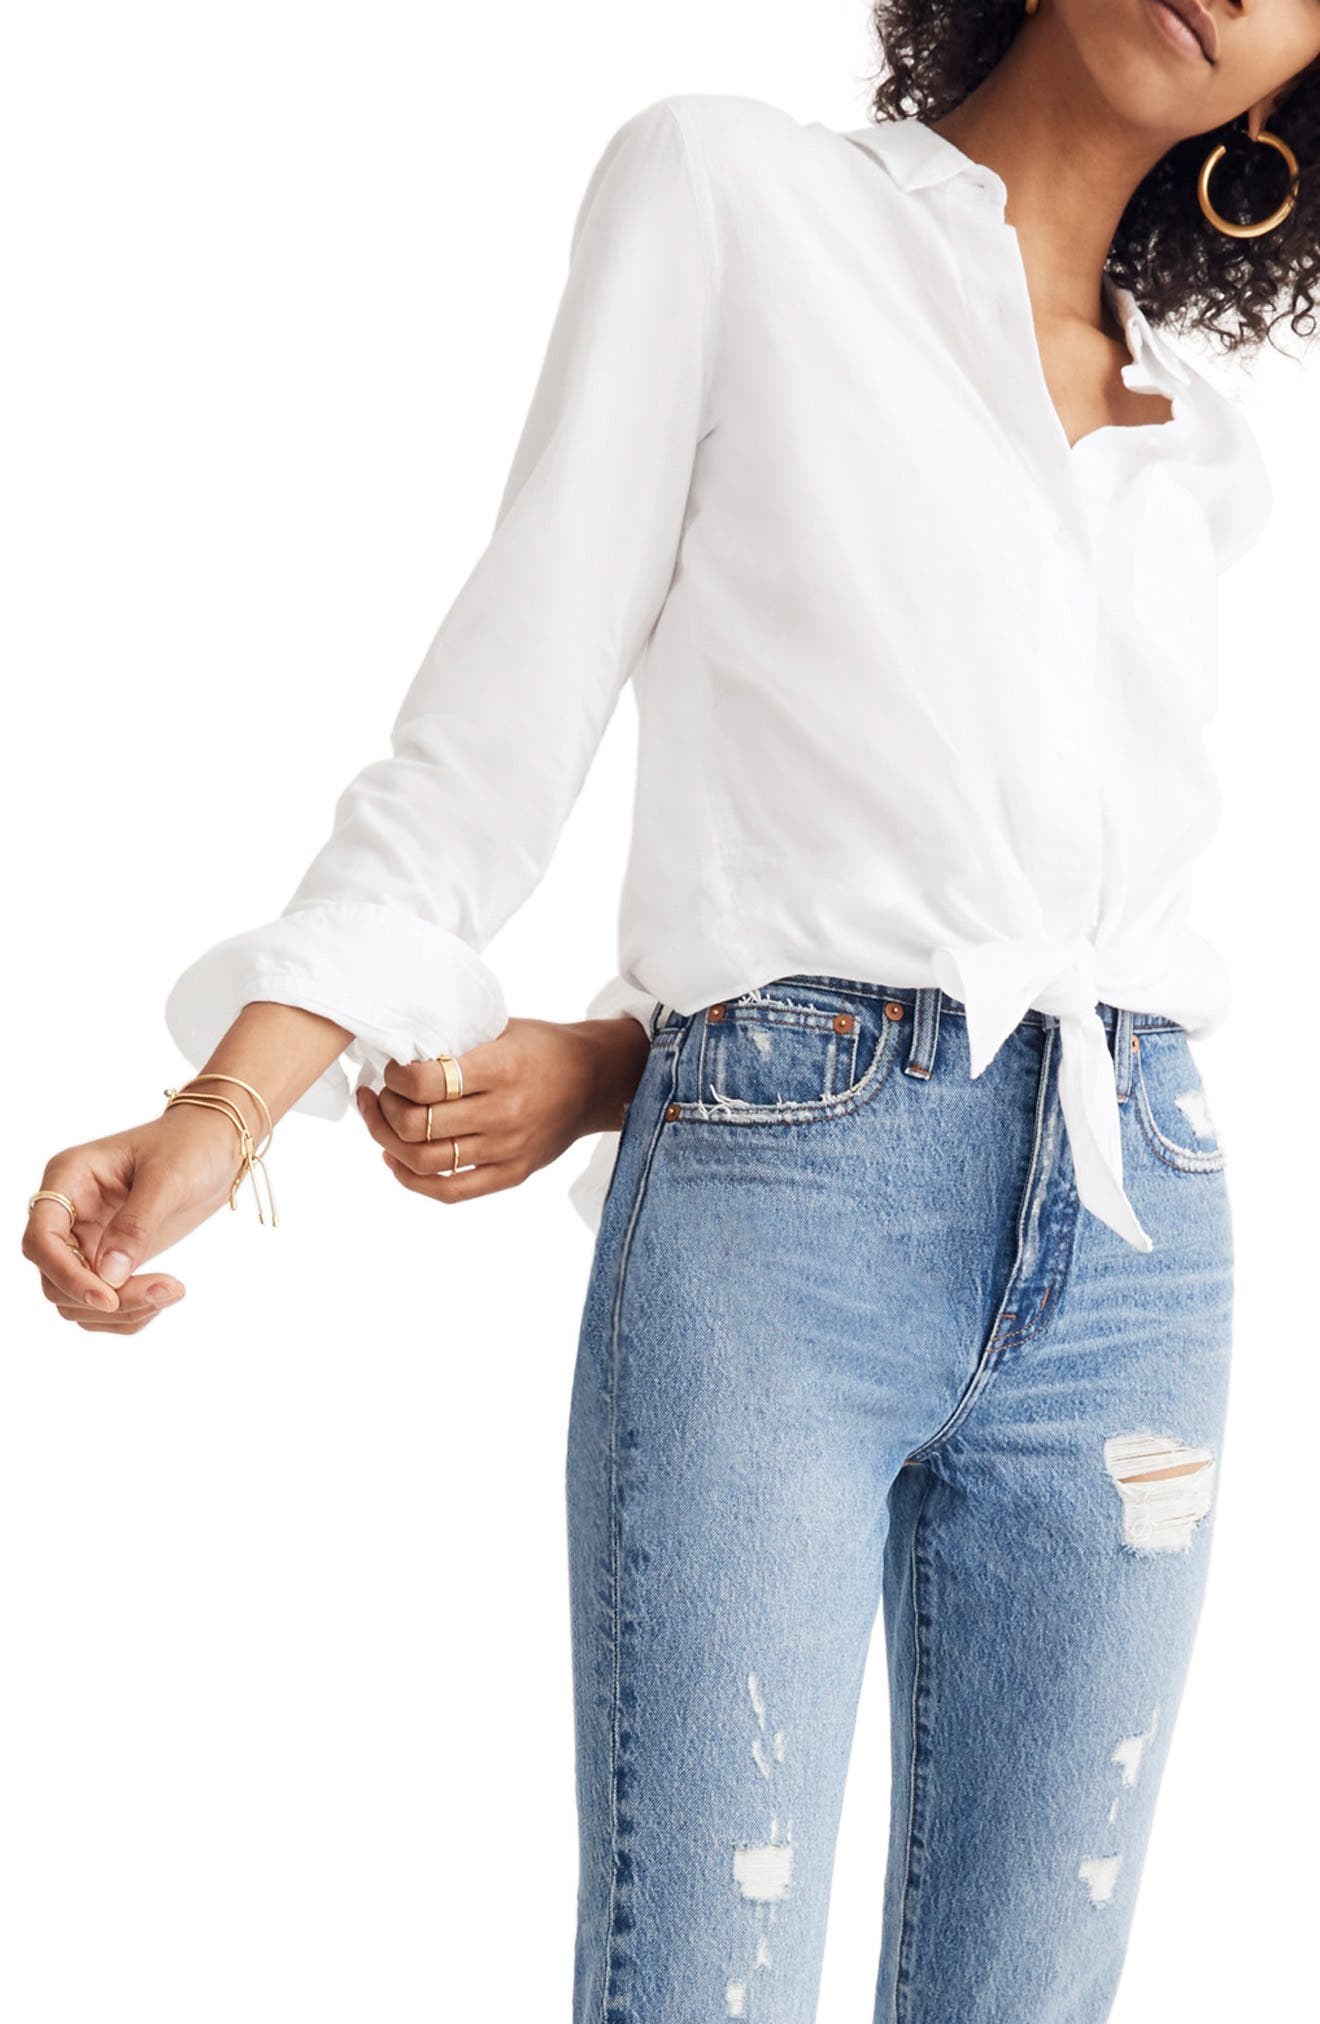 MADEWELL, Tie Front Shirt, Main thumbnail 1, color, EYELET WHITE